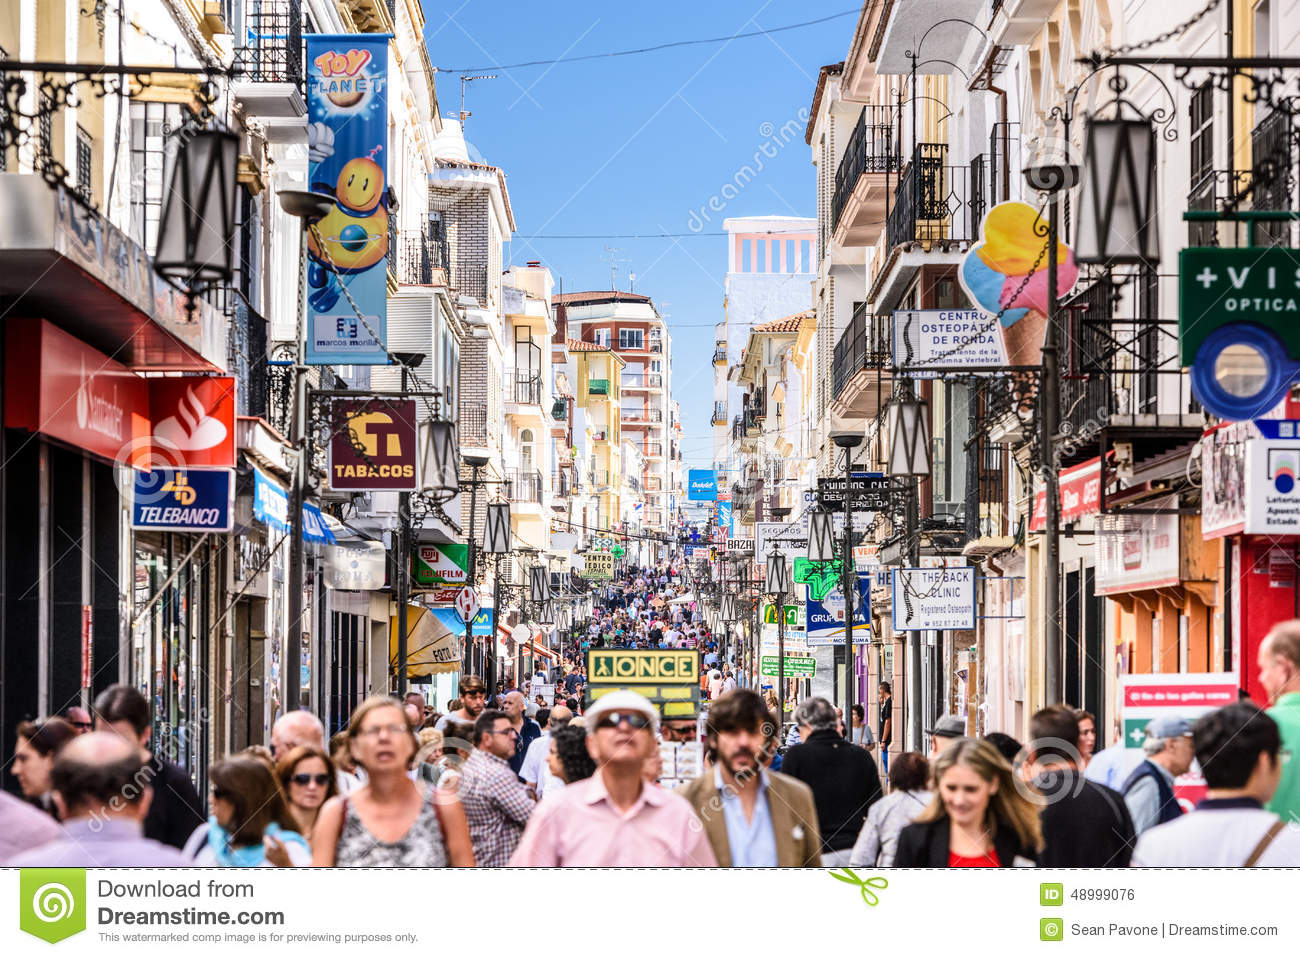 ... - OCTOBER 5, 2014: Crowds walk on Calle La Bola pedestrian street